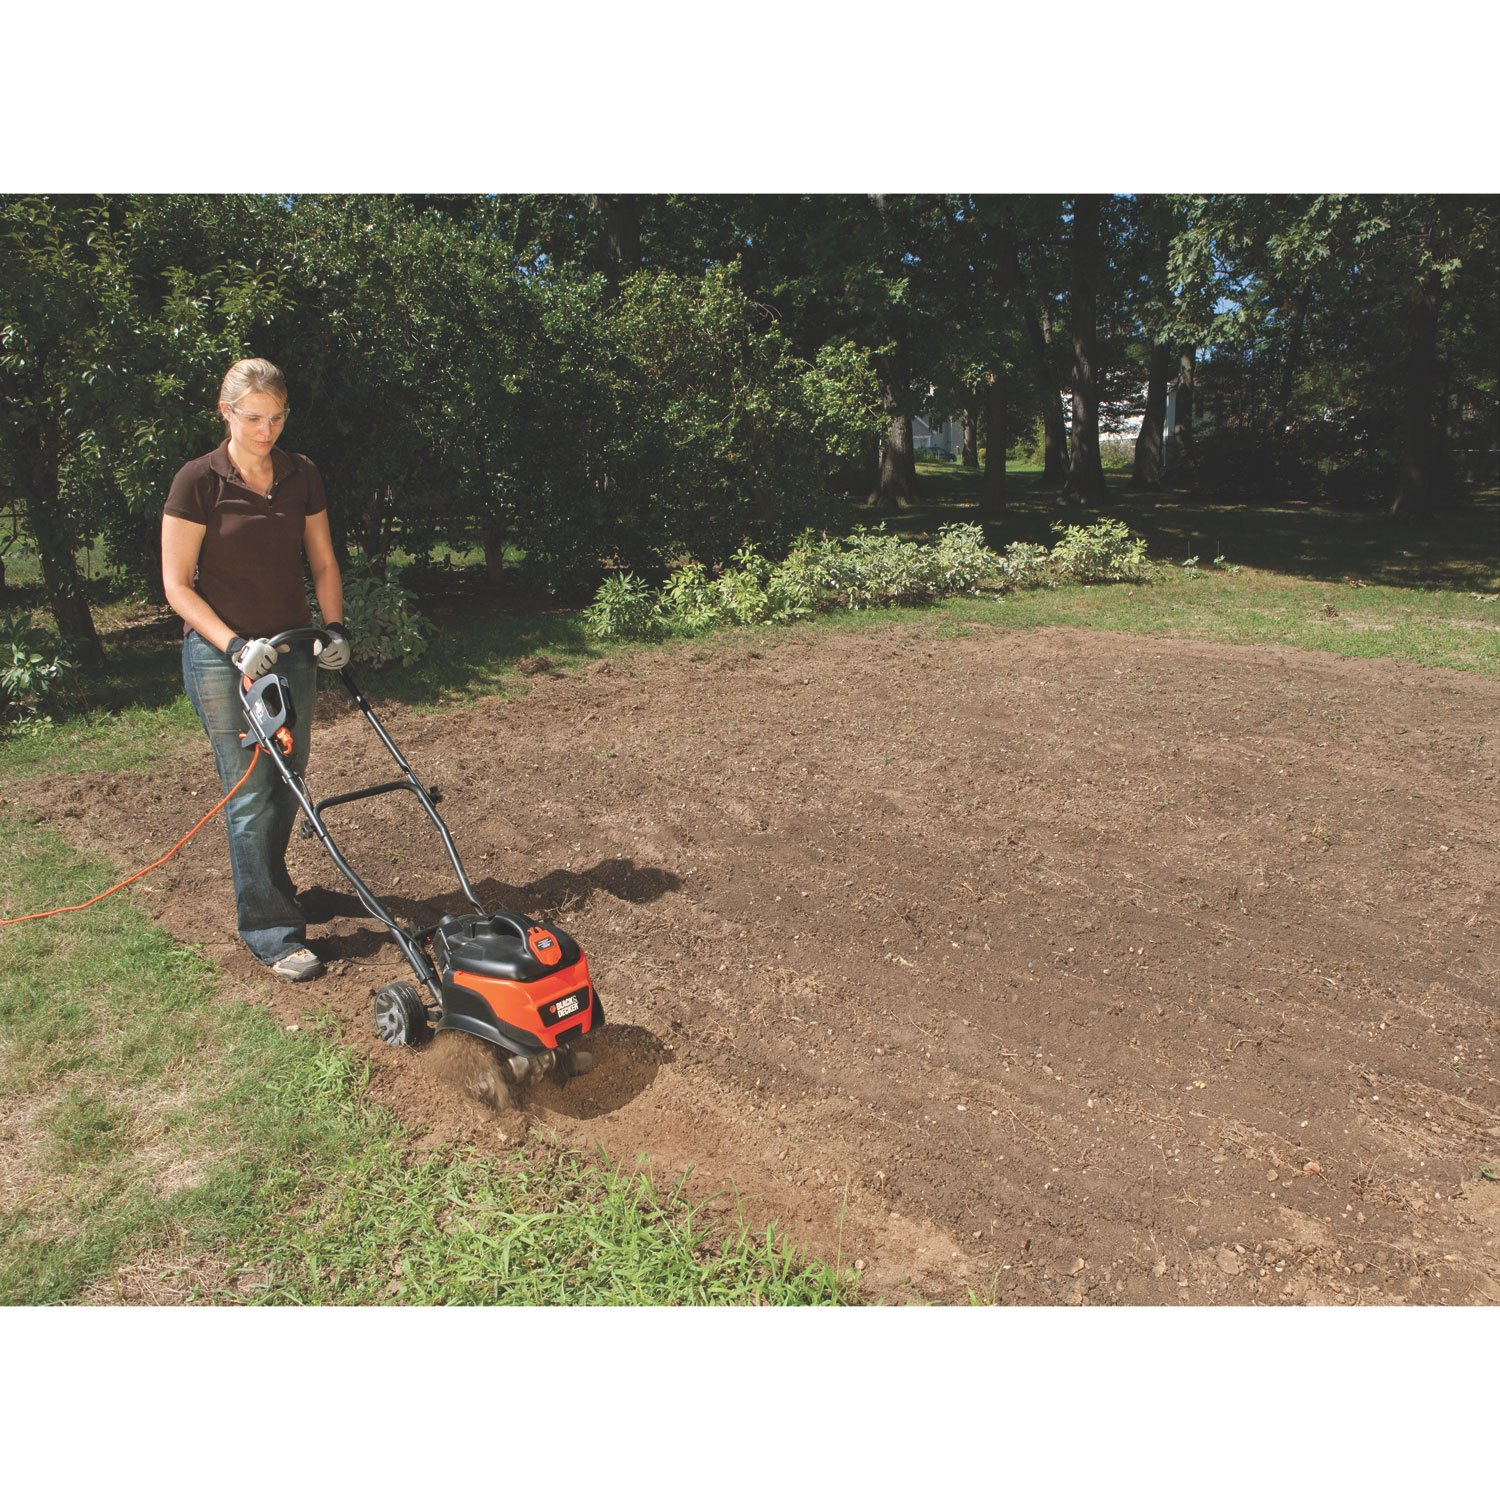 Amazon.com : Black & Decker TL10 8.3 Amp Corded Electric Front Tine ...